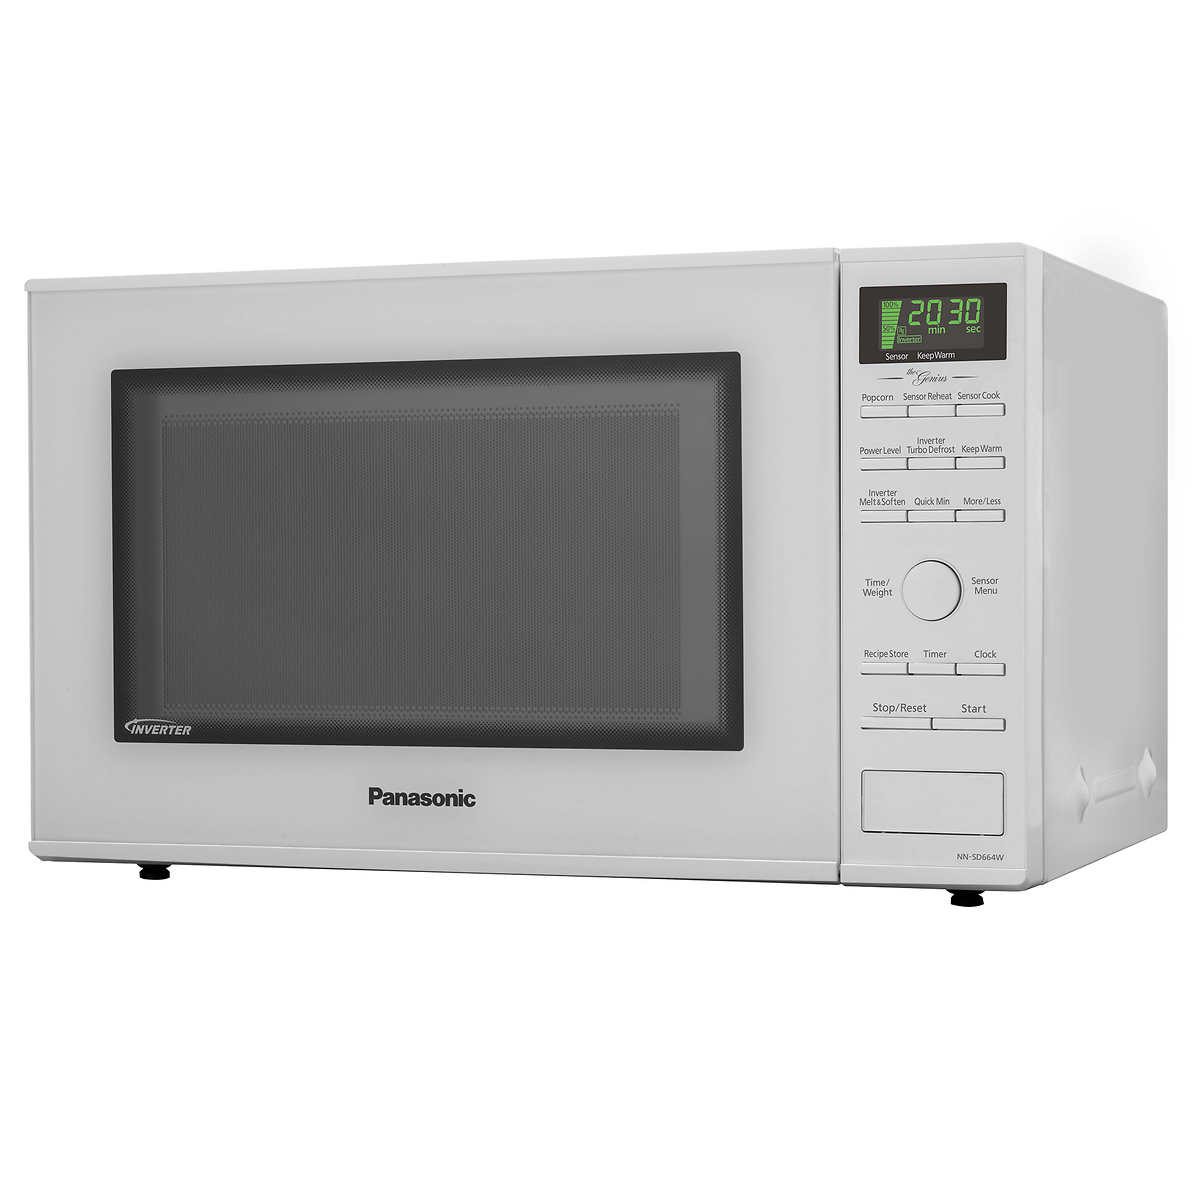 Panasonic Deluxe FlashXpress Dual Infrared Toaster Oven